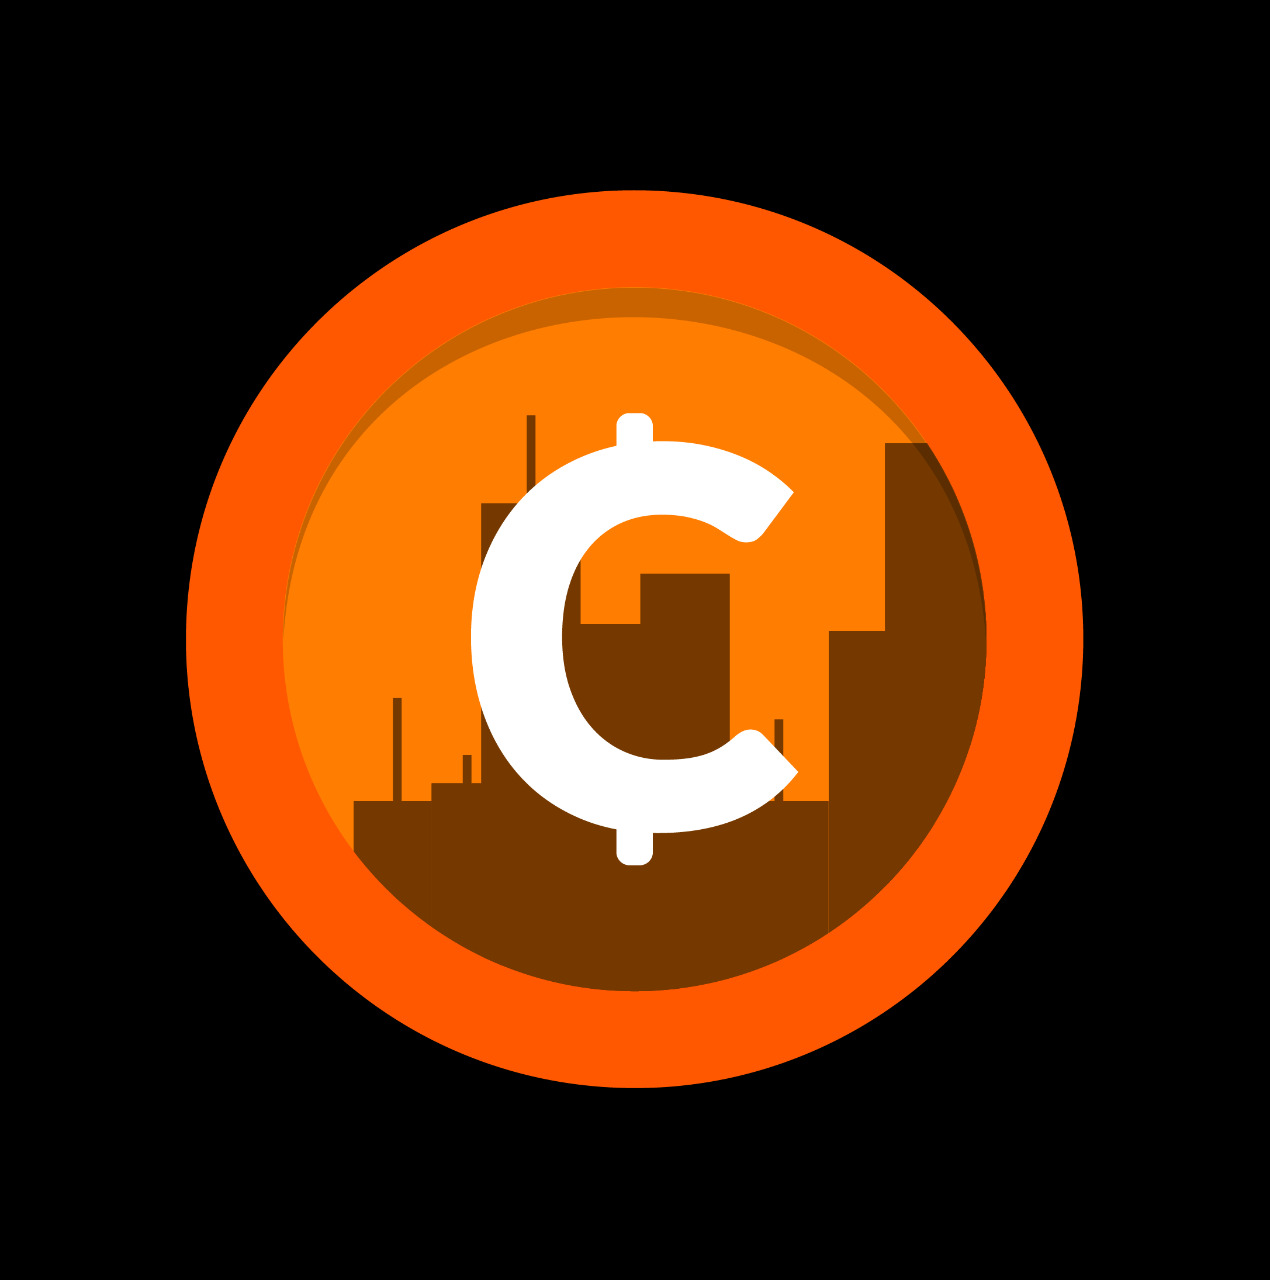 Cointimes